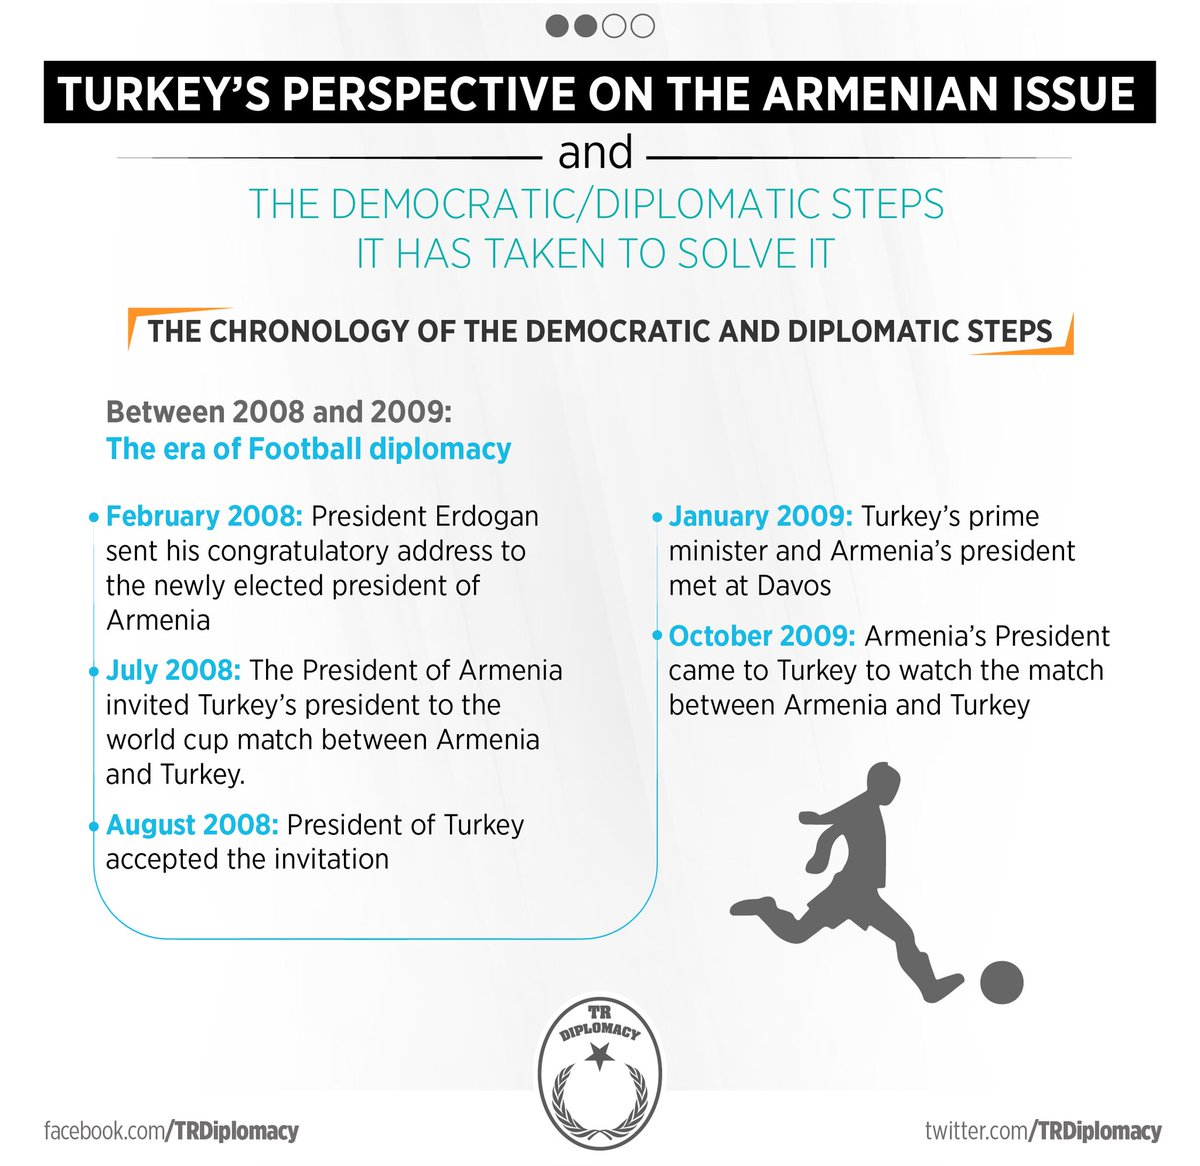 Turkey's perspective on the Armenian Issue and the democratic and diplomatic steps it has taken to solve it